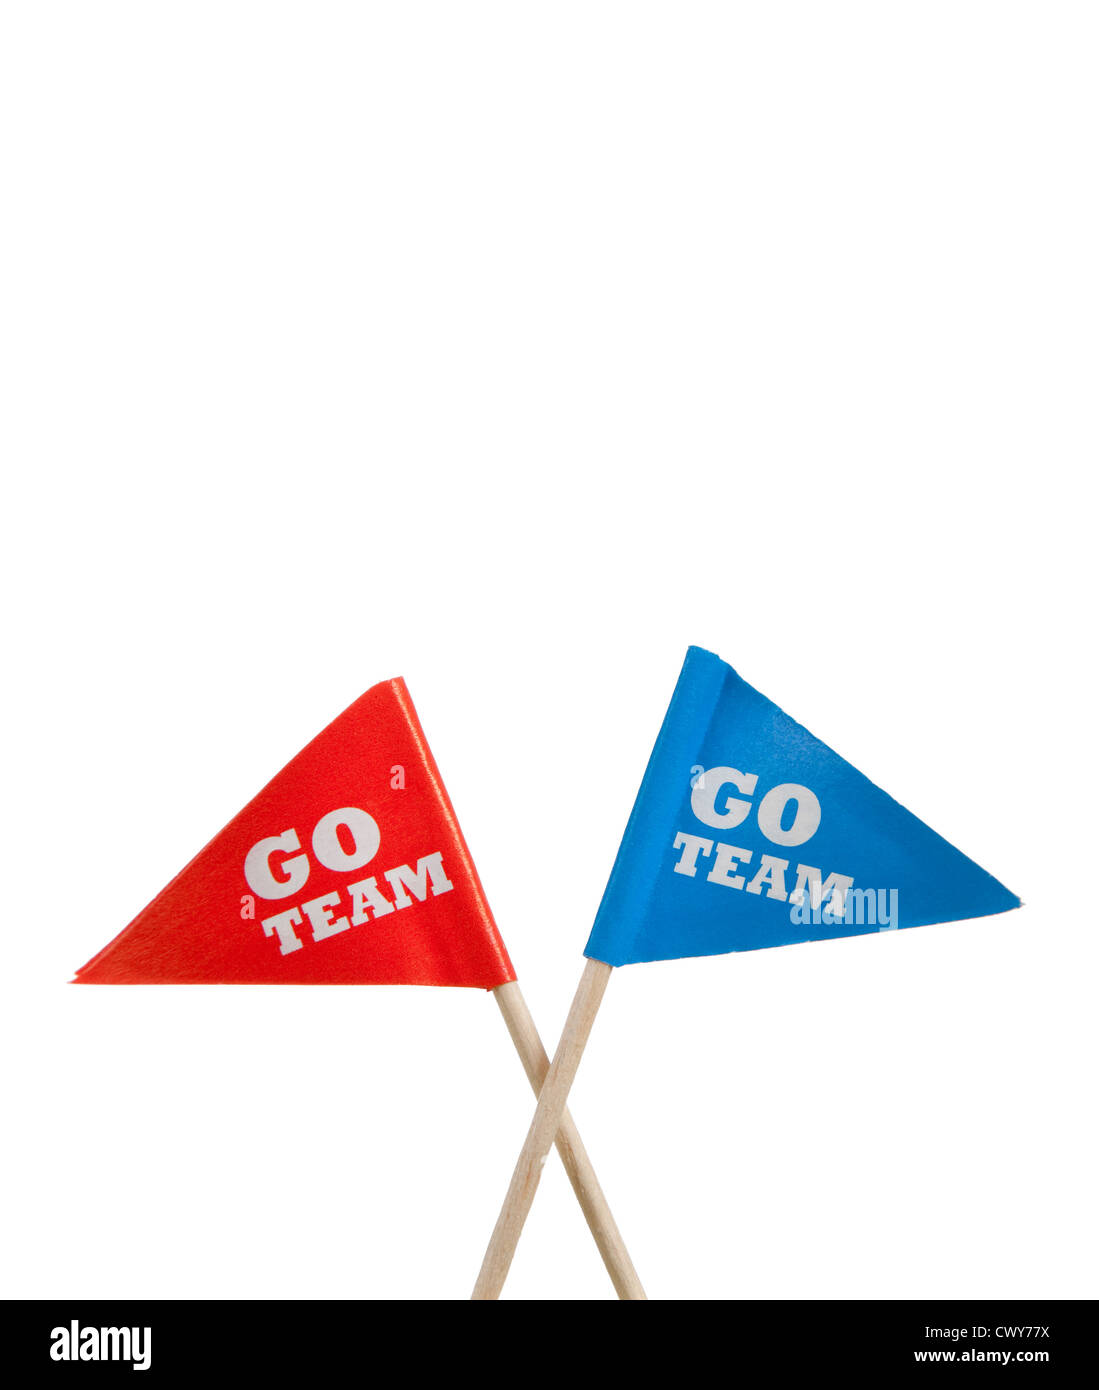 Red and blue 'Go Team' pennants on a white background with copy space - Stock Image